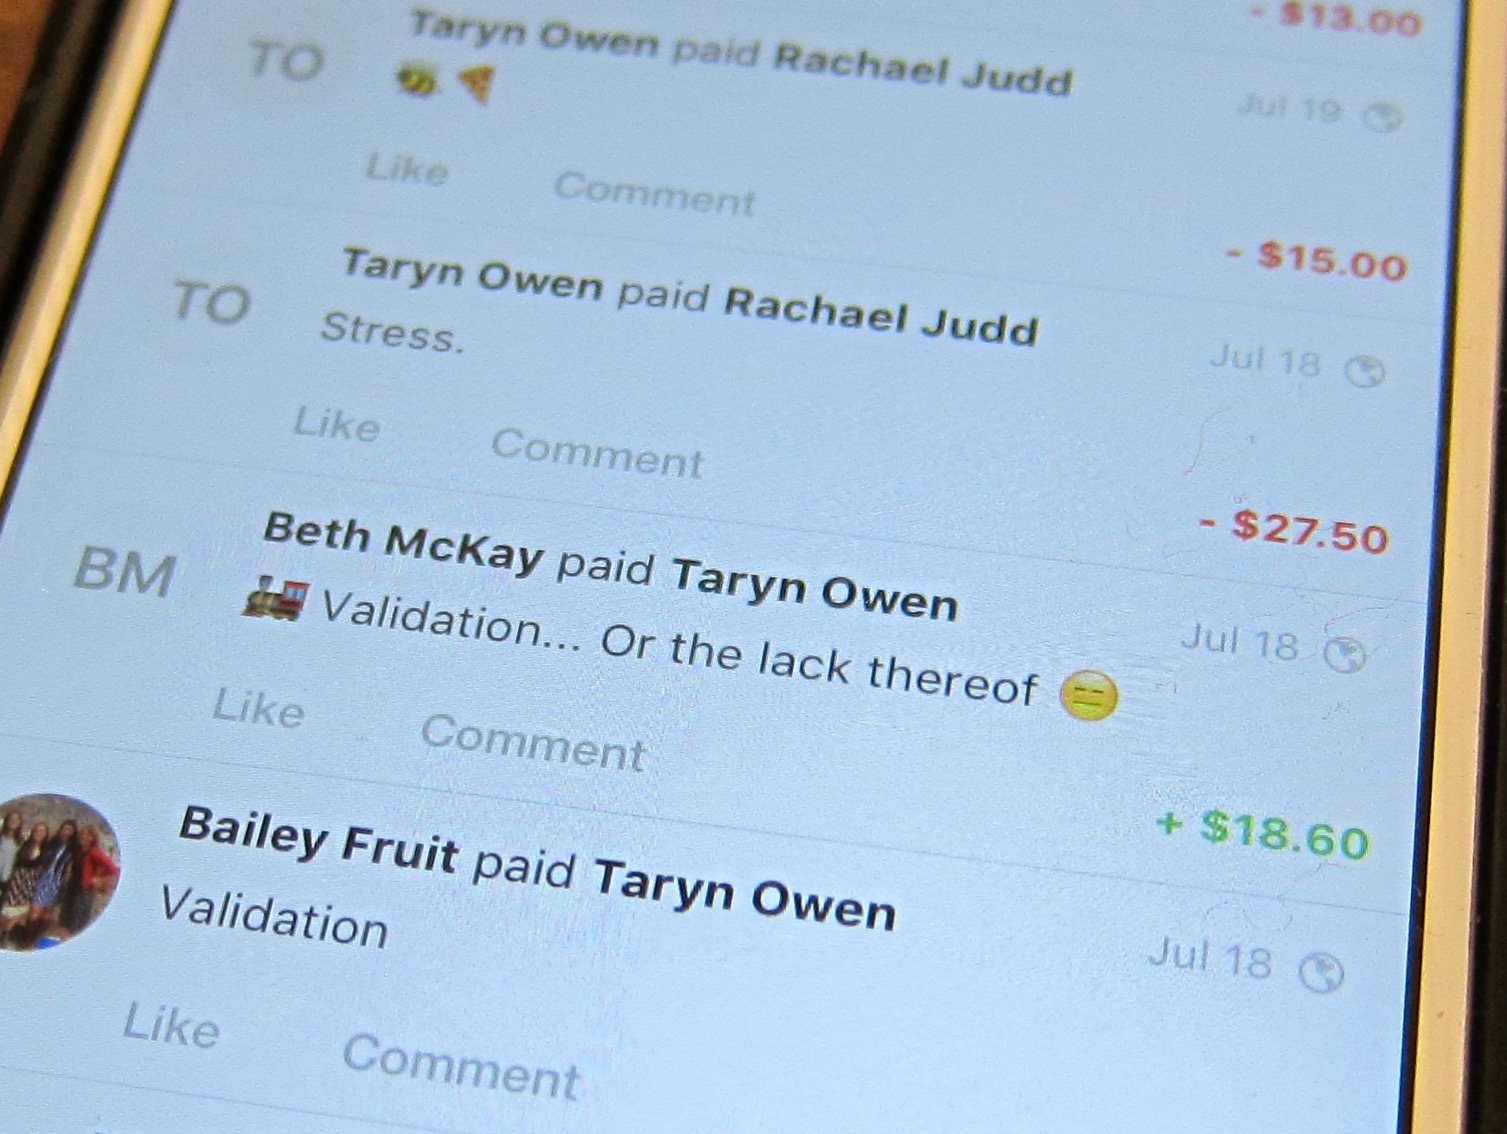 Adding messages to your Venmo transactions helps you keep track of them. (Taryn Owens)